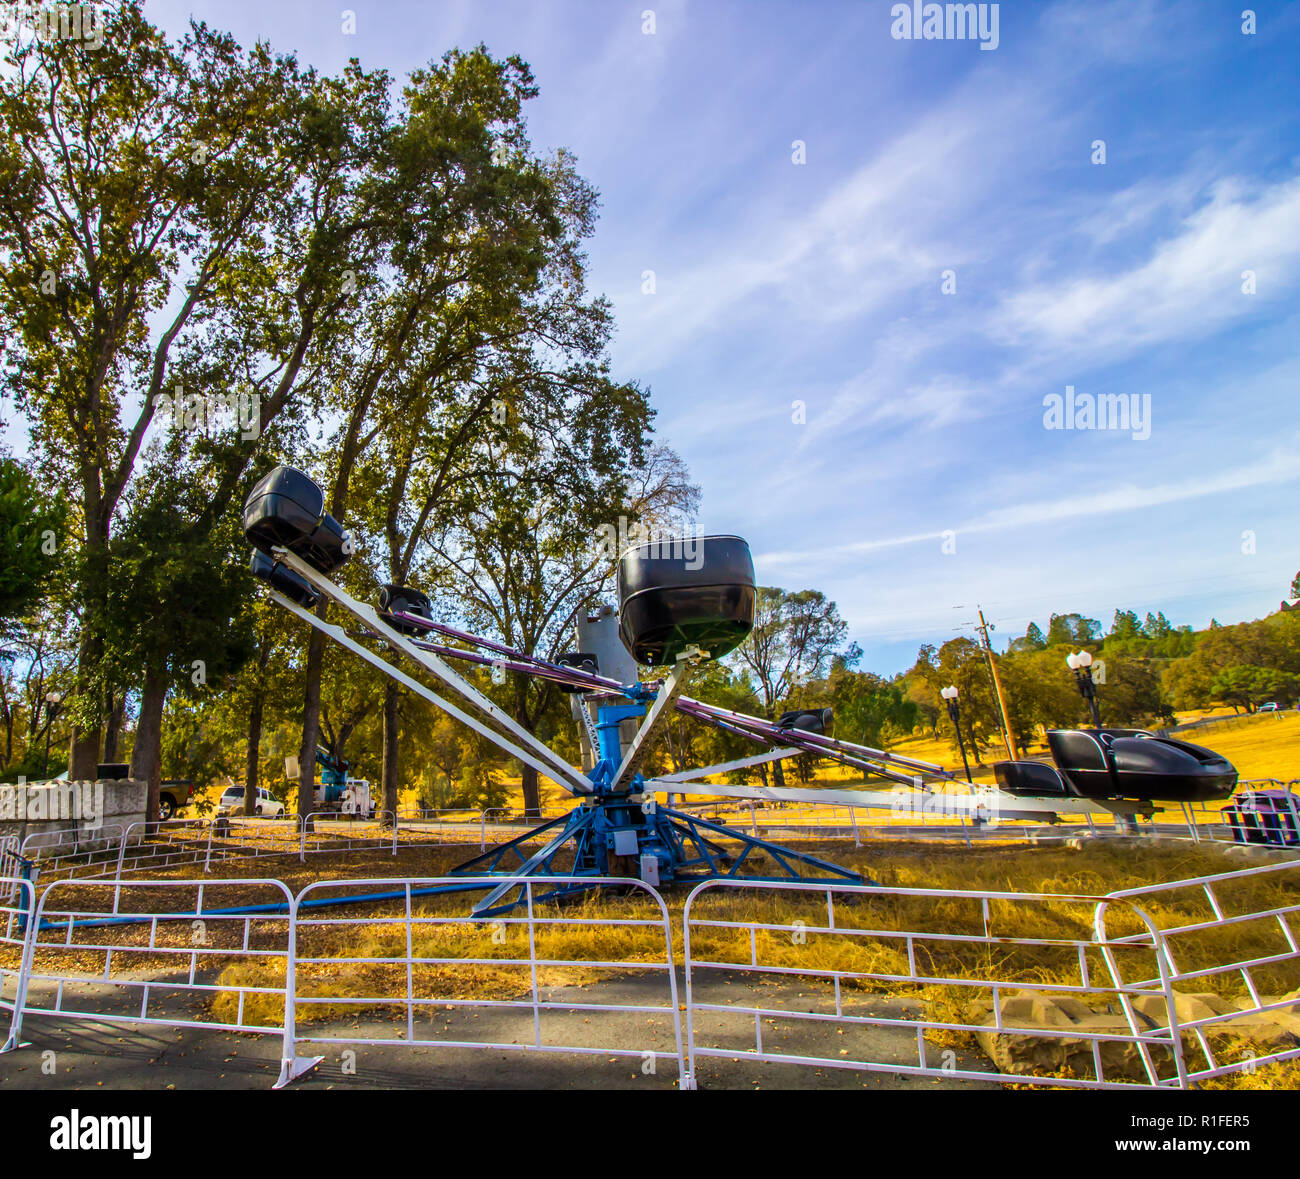 Old Obsolete Amusement Ride In Storage - Stock Image